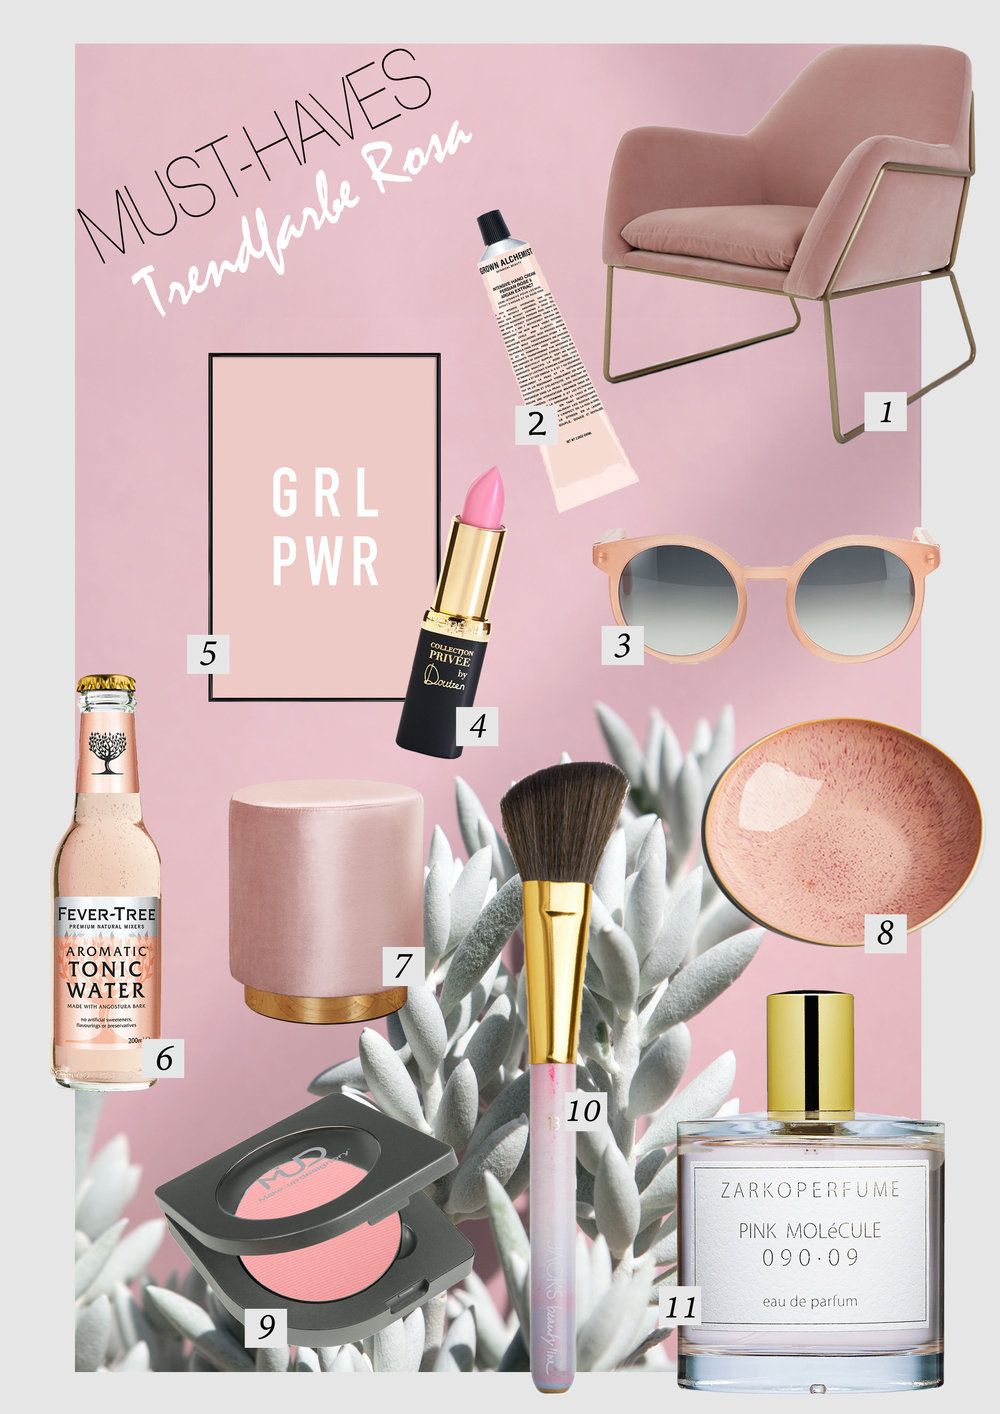 musthaves_trendfarbe_rosa_loreal_juniqe_made.com_molecule_grown_lunettes_motelamio.jpg